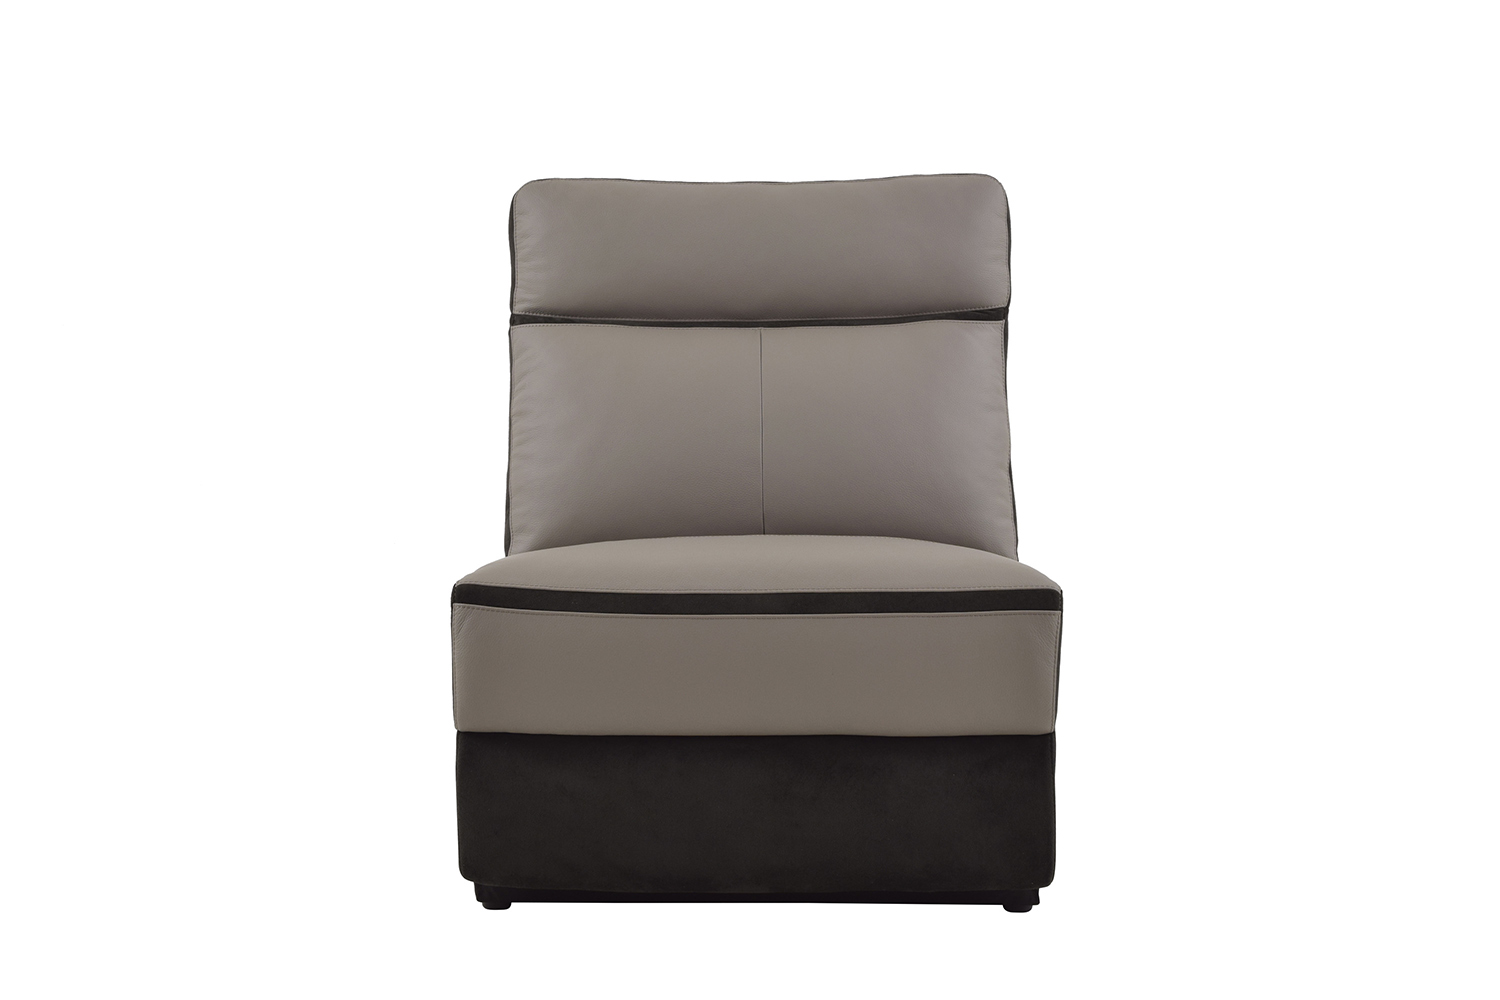 Homelegance Laertes Armless Chair - Top Grain Leather/Fabric - Taupe Grey